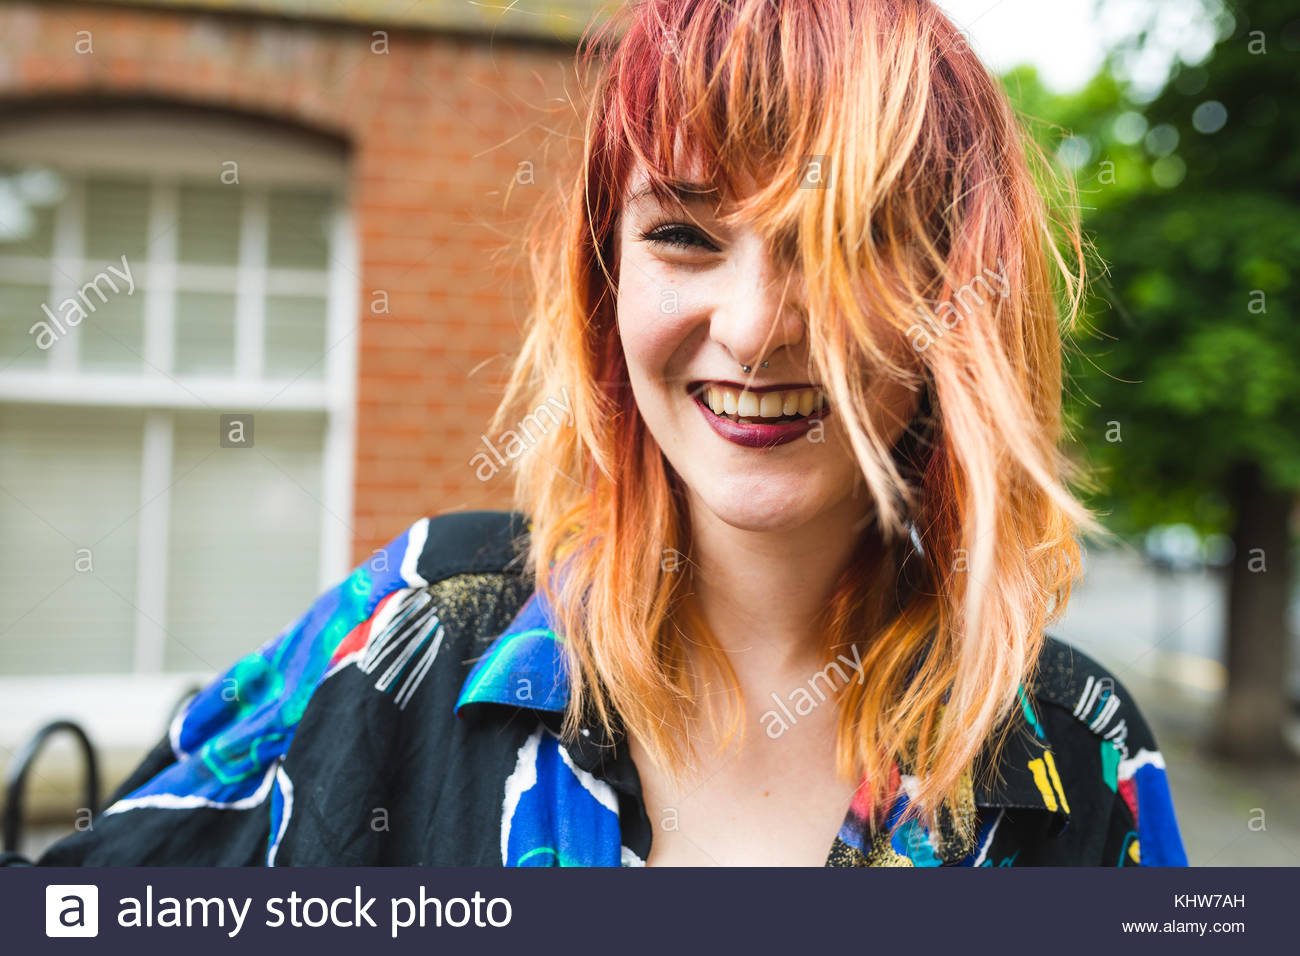 Portrait of young woman with dip dyed hair laughing - Stock Image